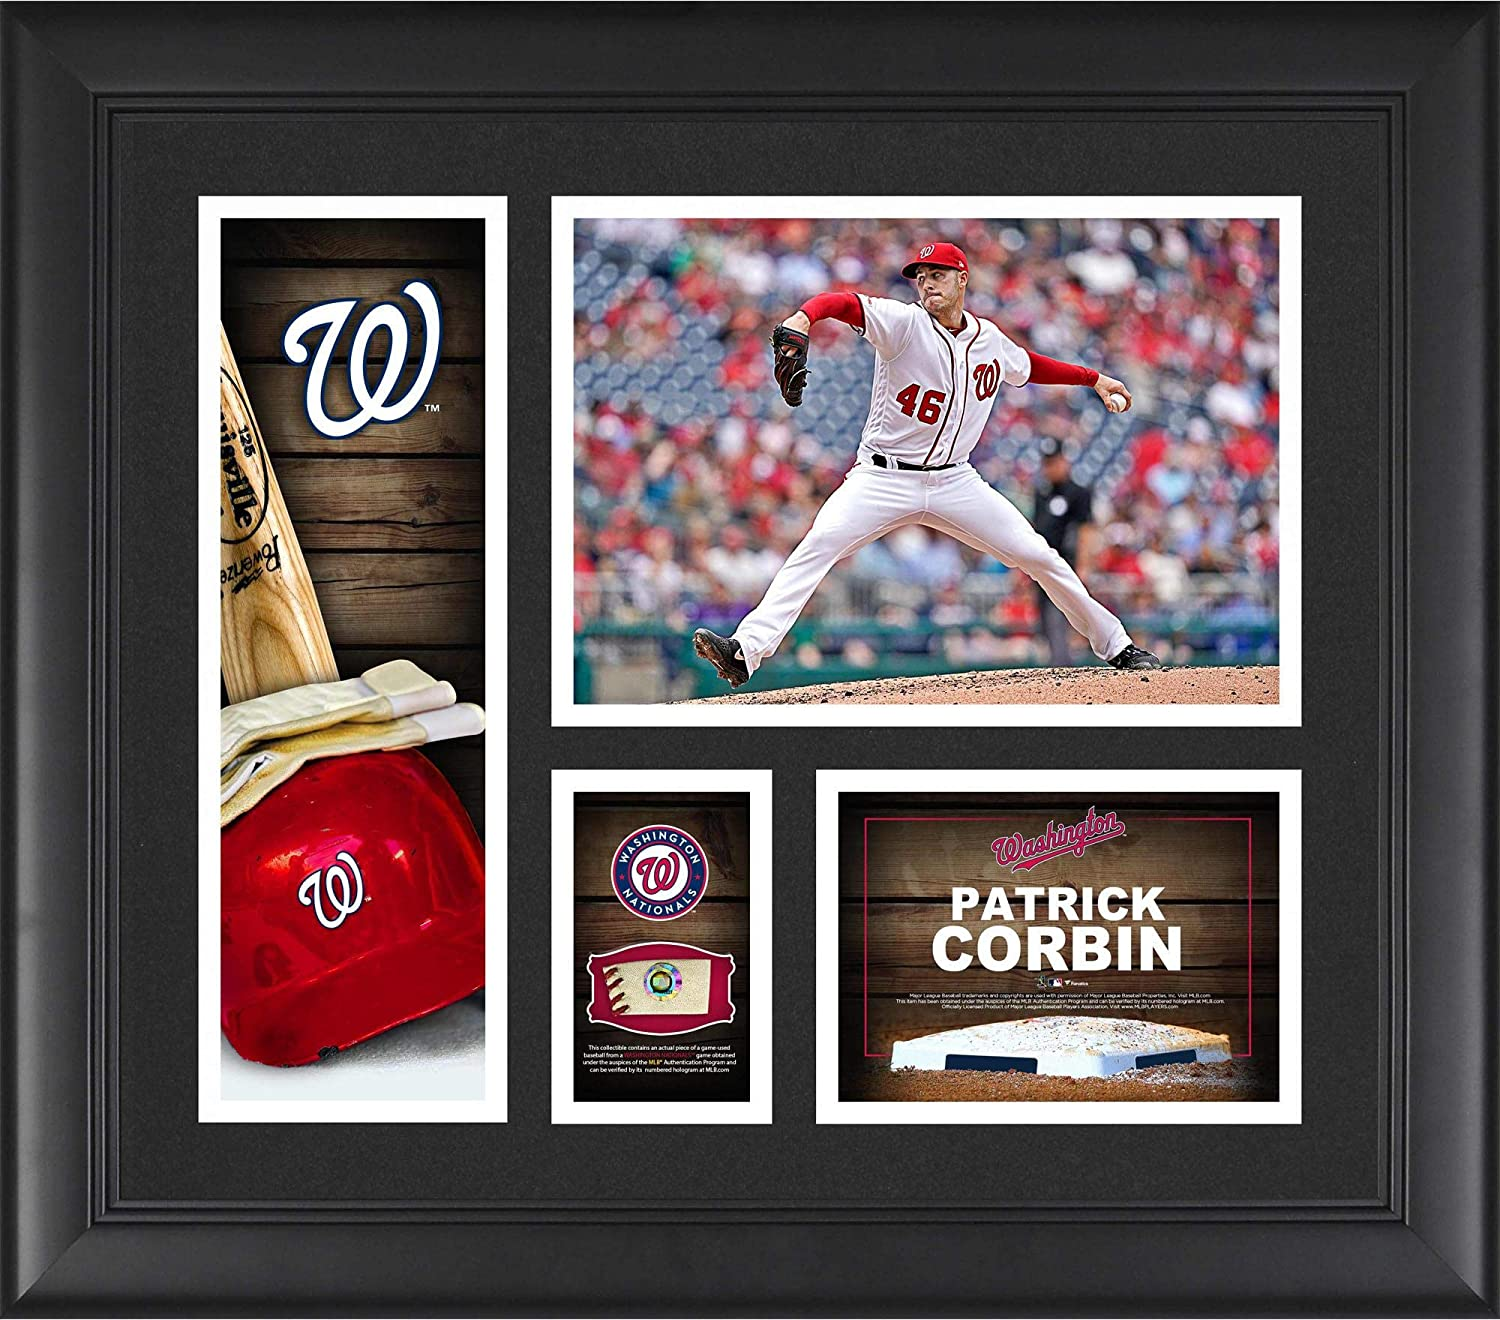 Patrick Corbin Washington Nationals Framed 15 x 17 Player Collage with a Piece of Game-Used Ball - MLB Player Plaques and Collages